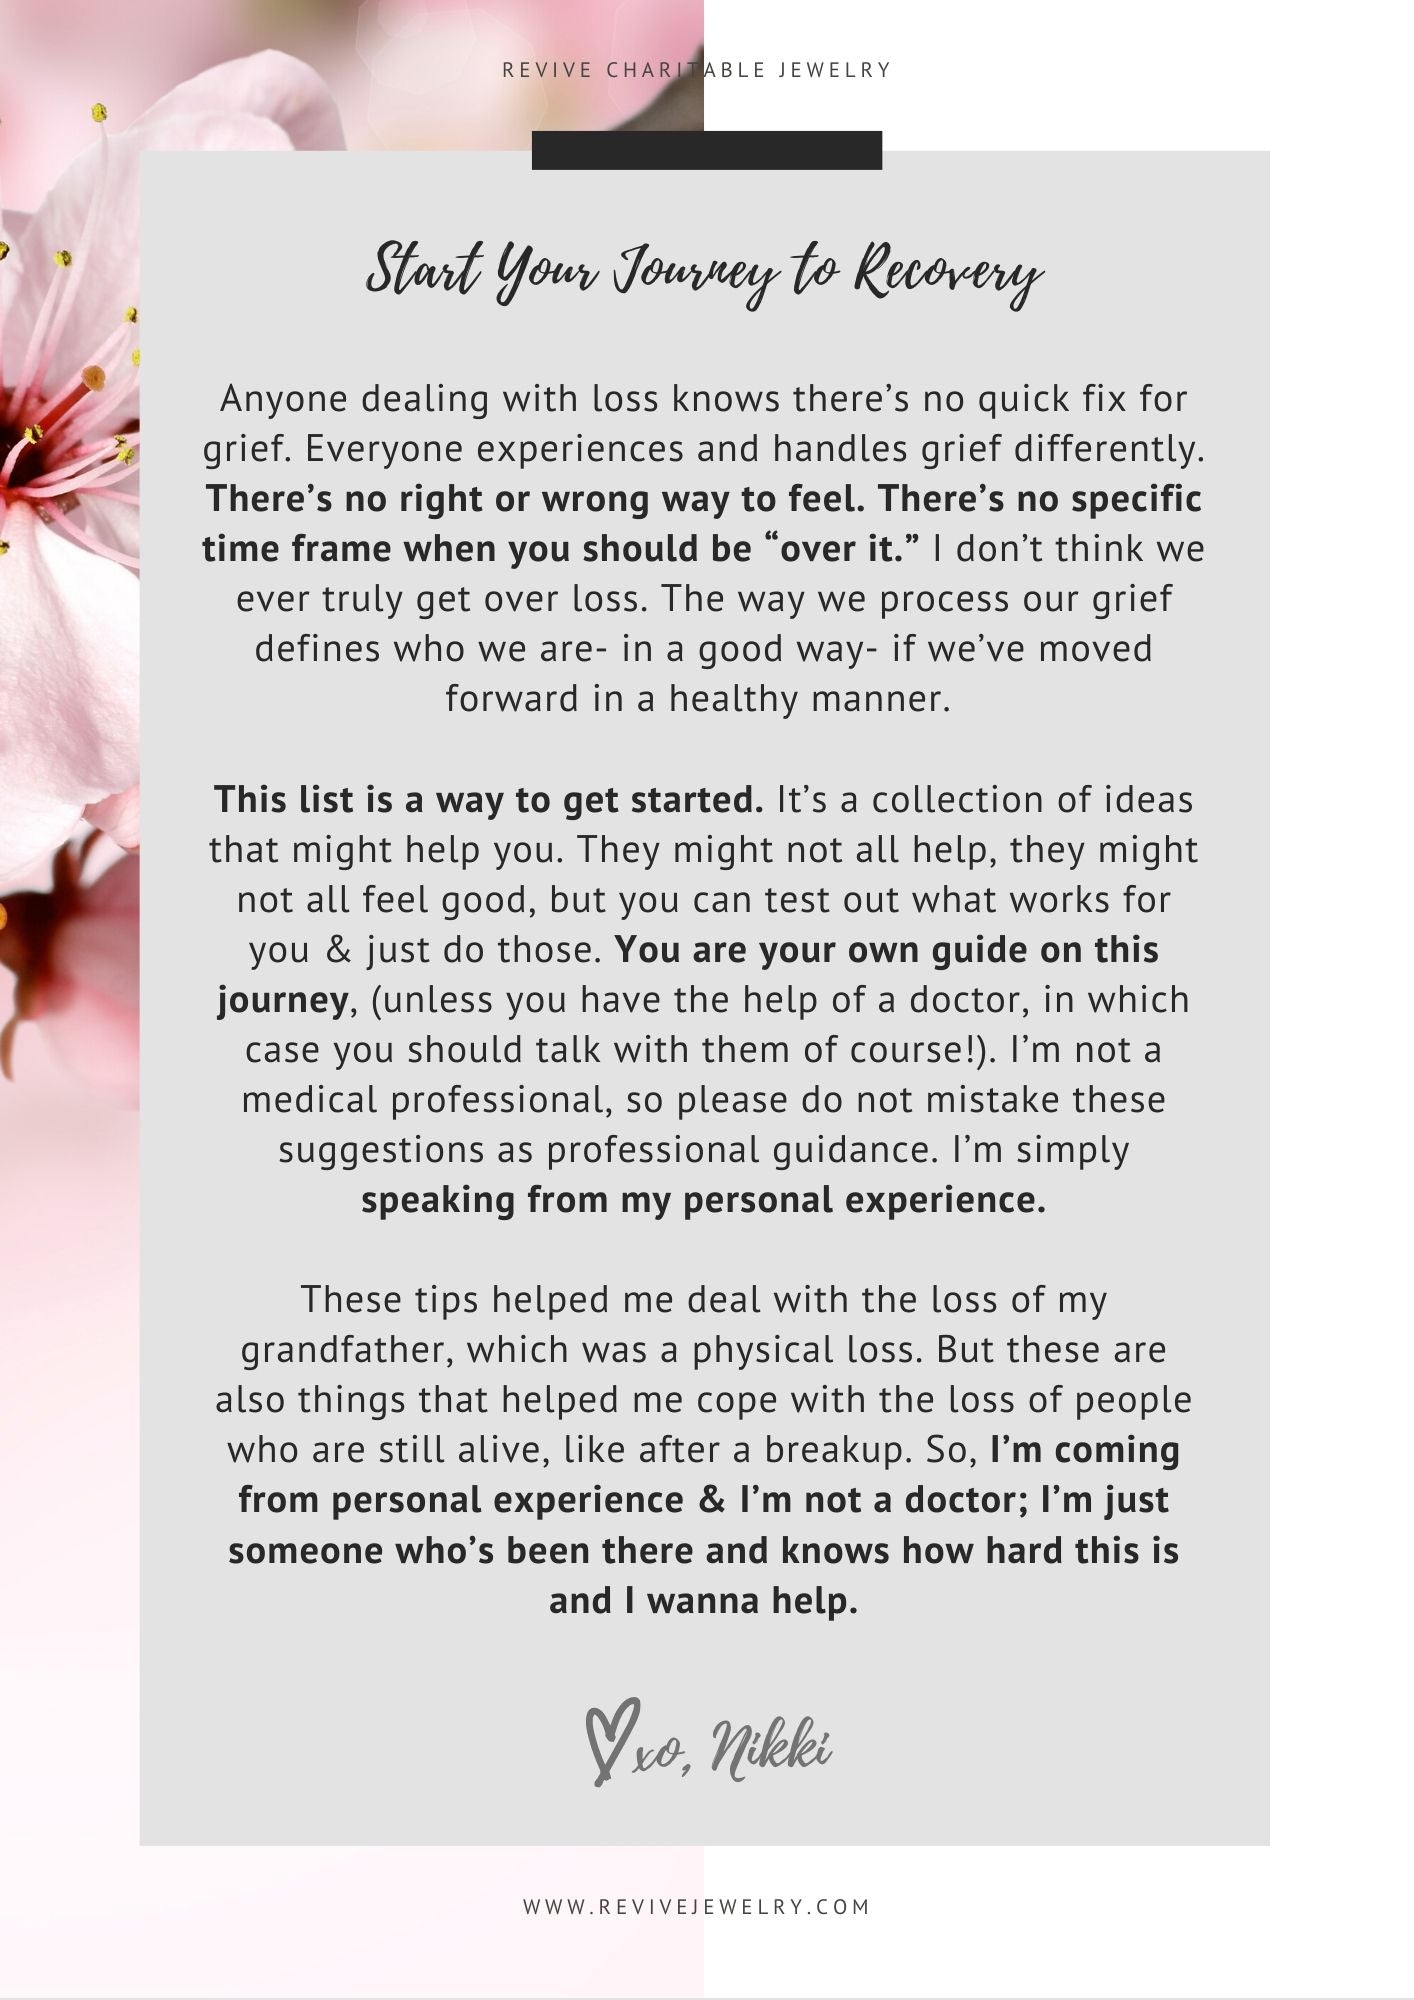 a letter from me about grief